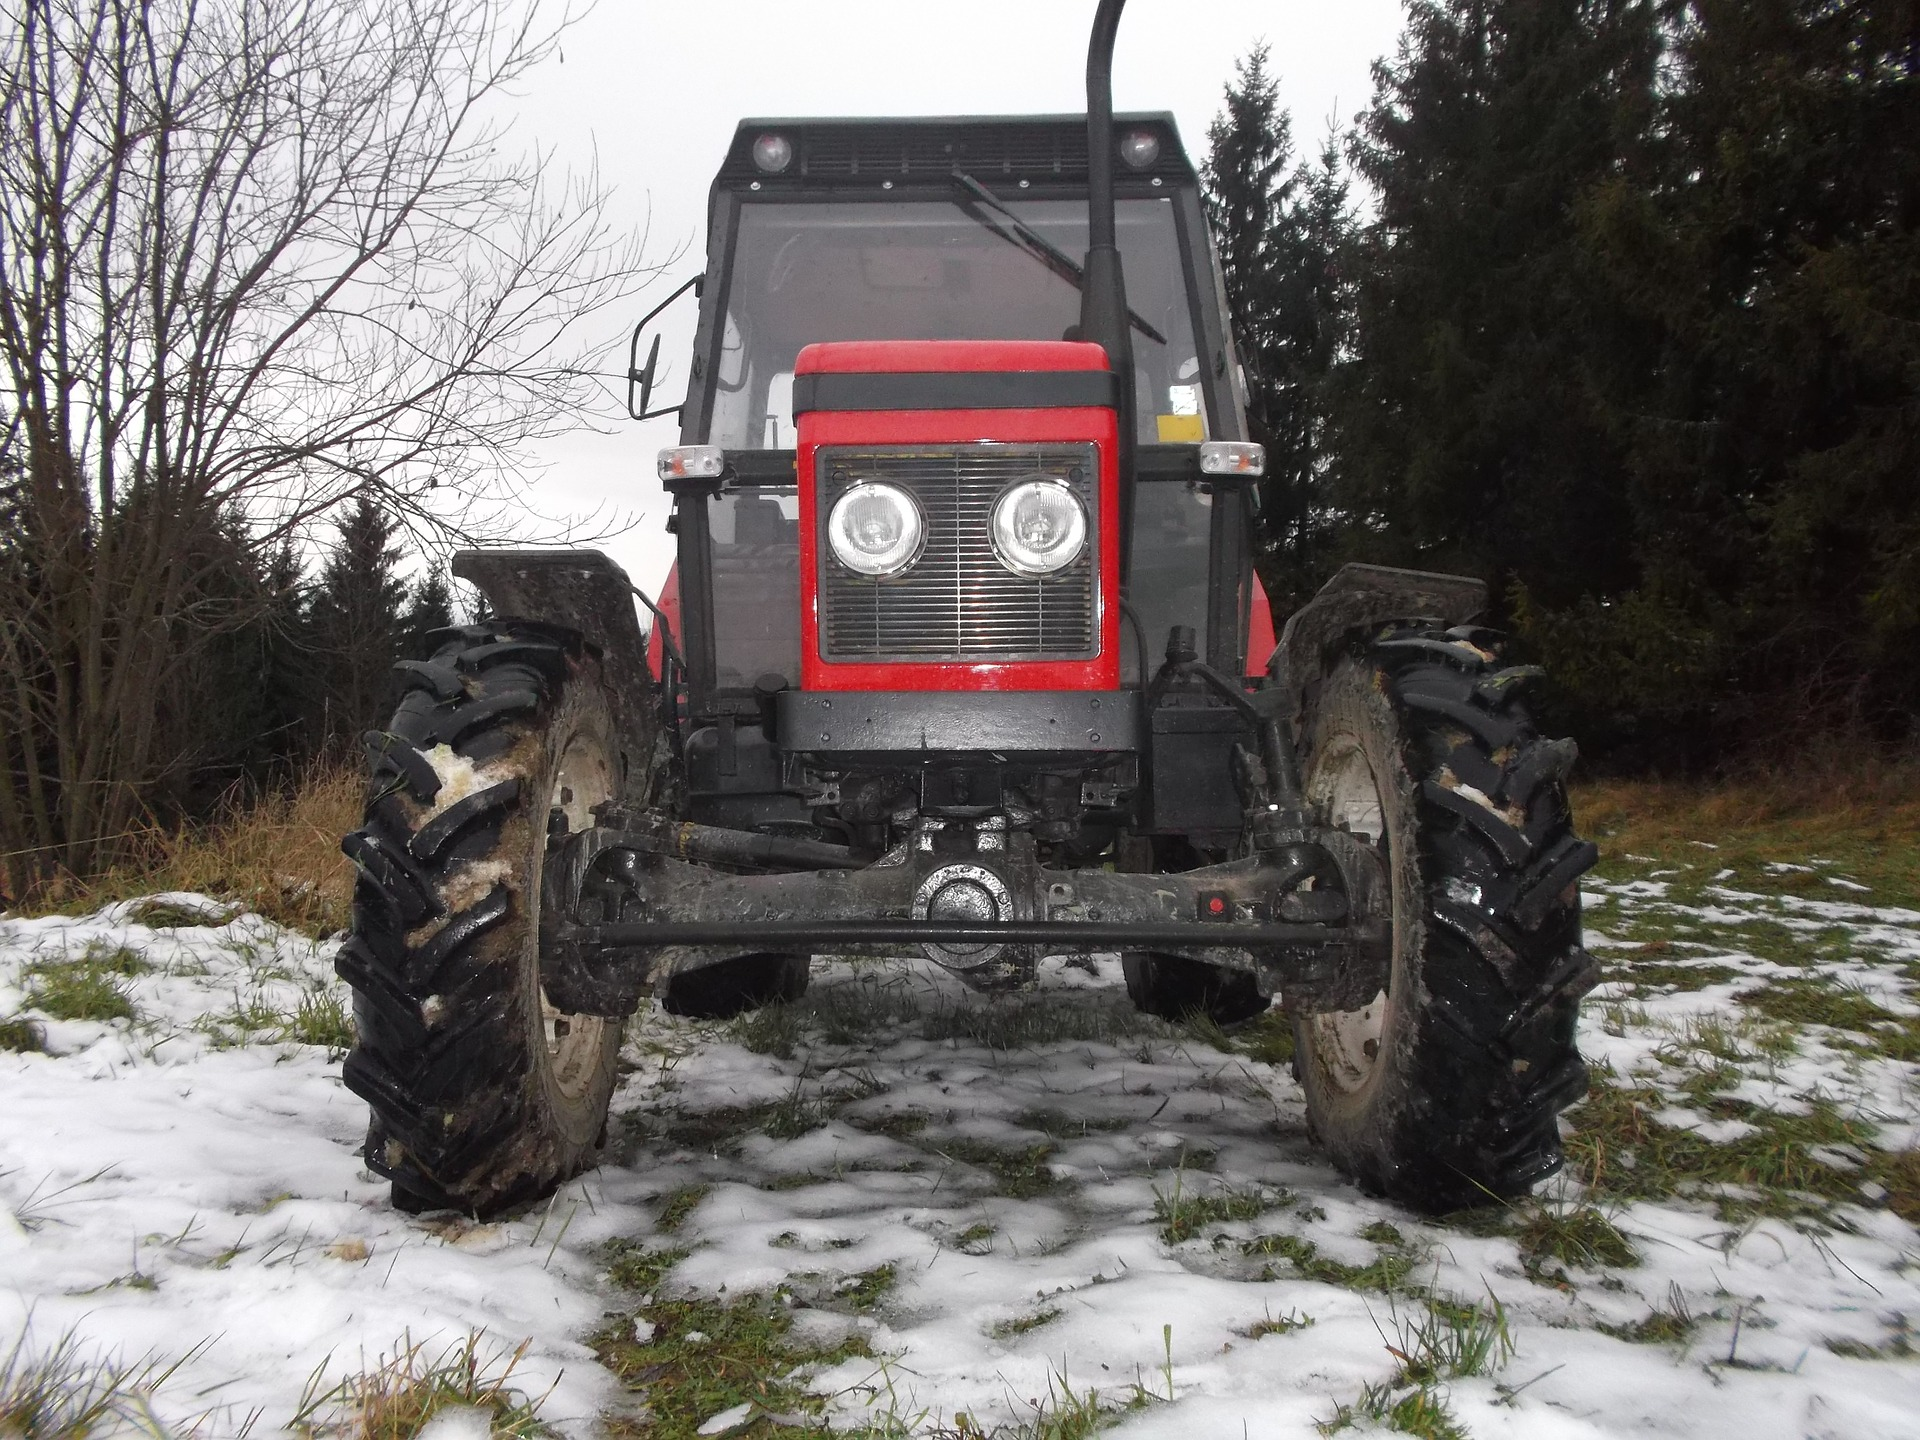 tractor-1169793_1920